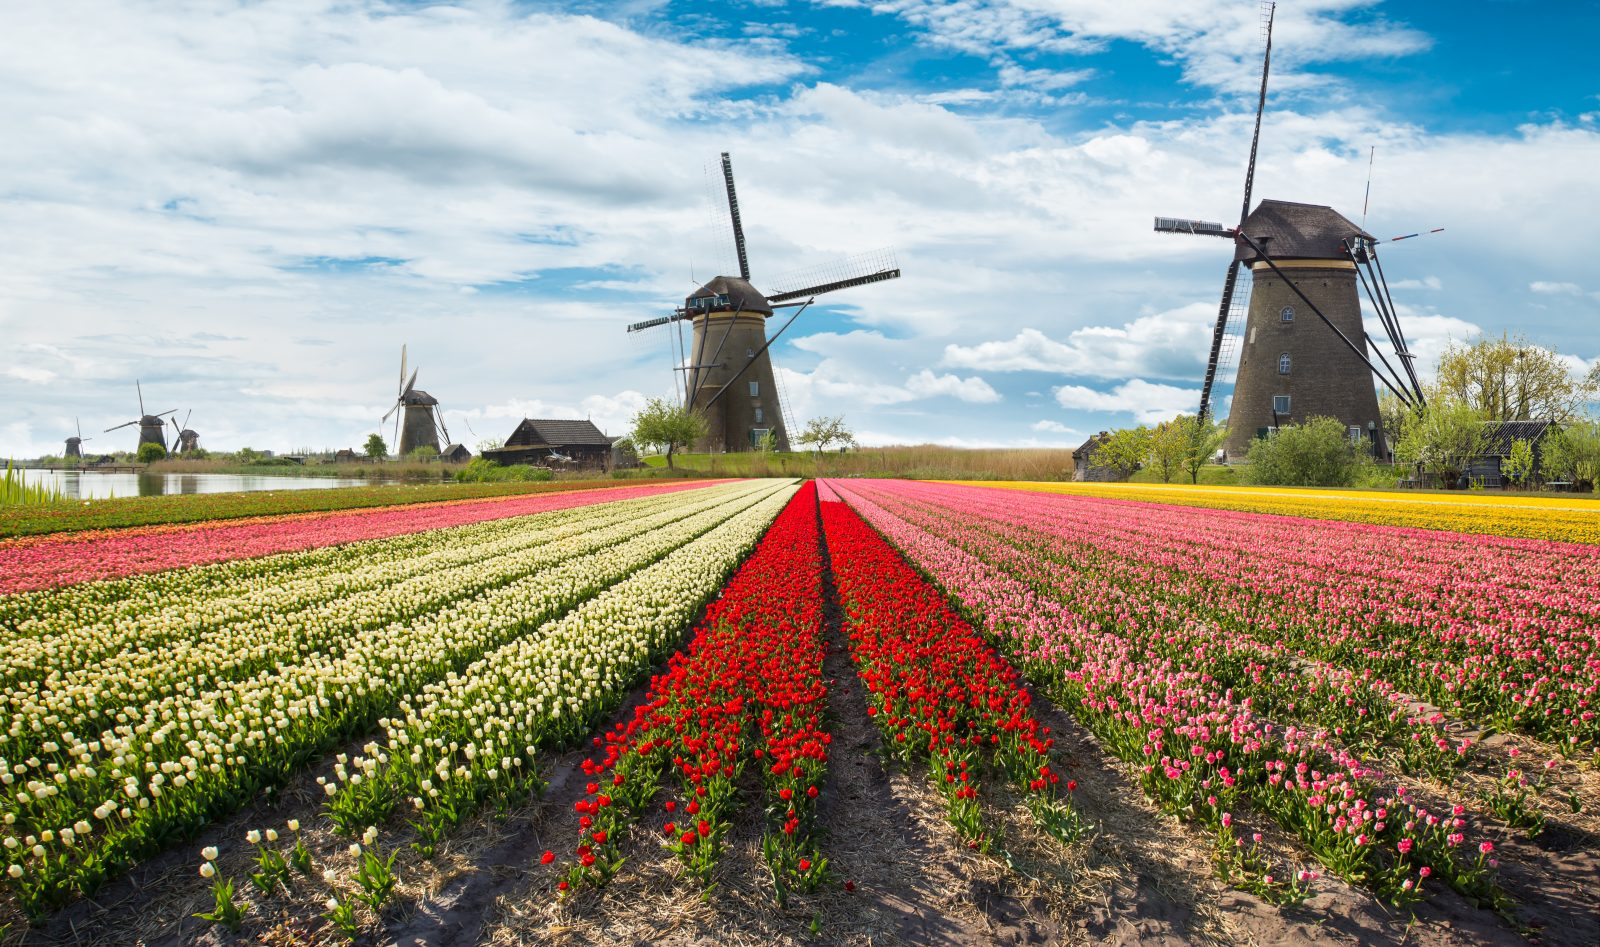 Day Trip from Amsterdam: Windmills & Tulips